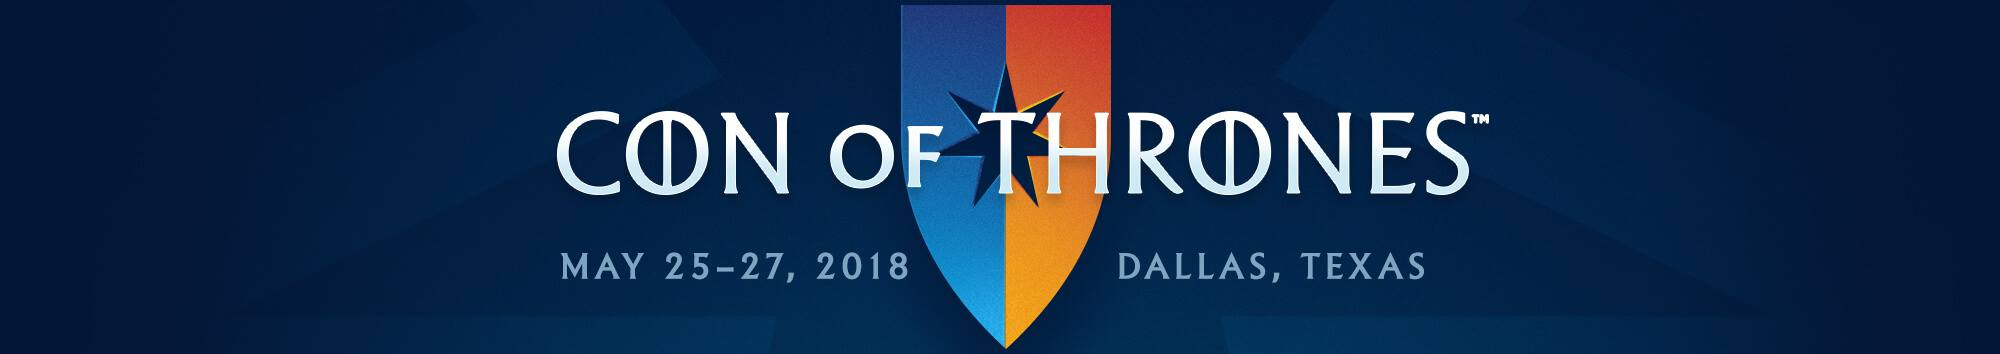 Tickets for Con of Thrones 2018 in Dallas from ShowClix